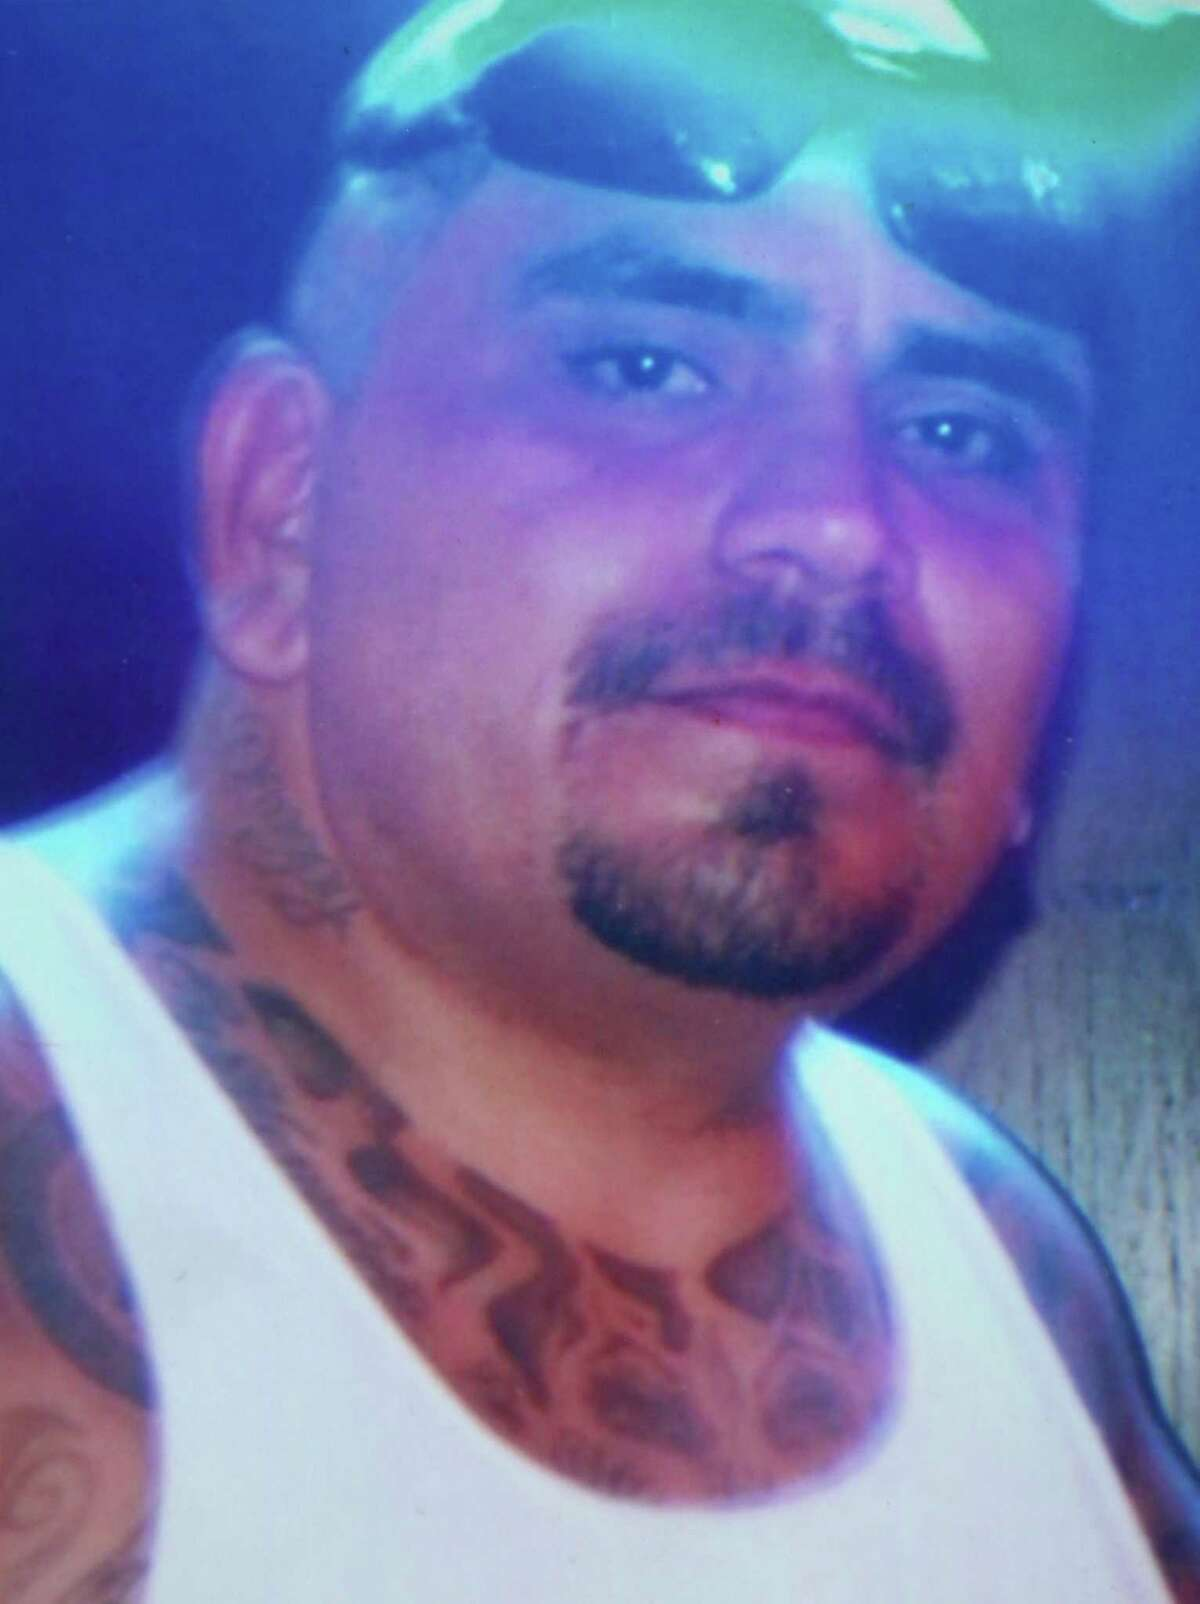 Anthony Villarreal is shown in this family photo. He was shot to death on Feb. 19, 2013, at the intersection of Commercial Avenue and Crystal Street, near his home.